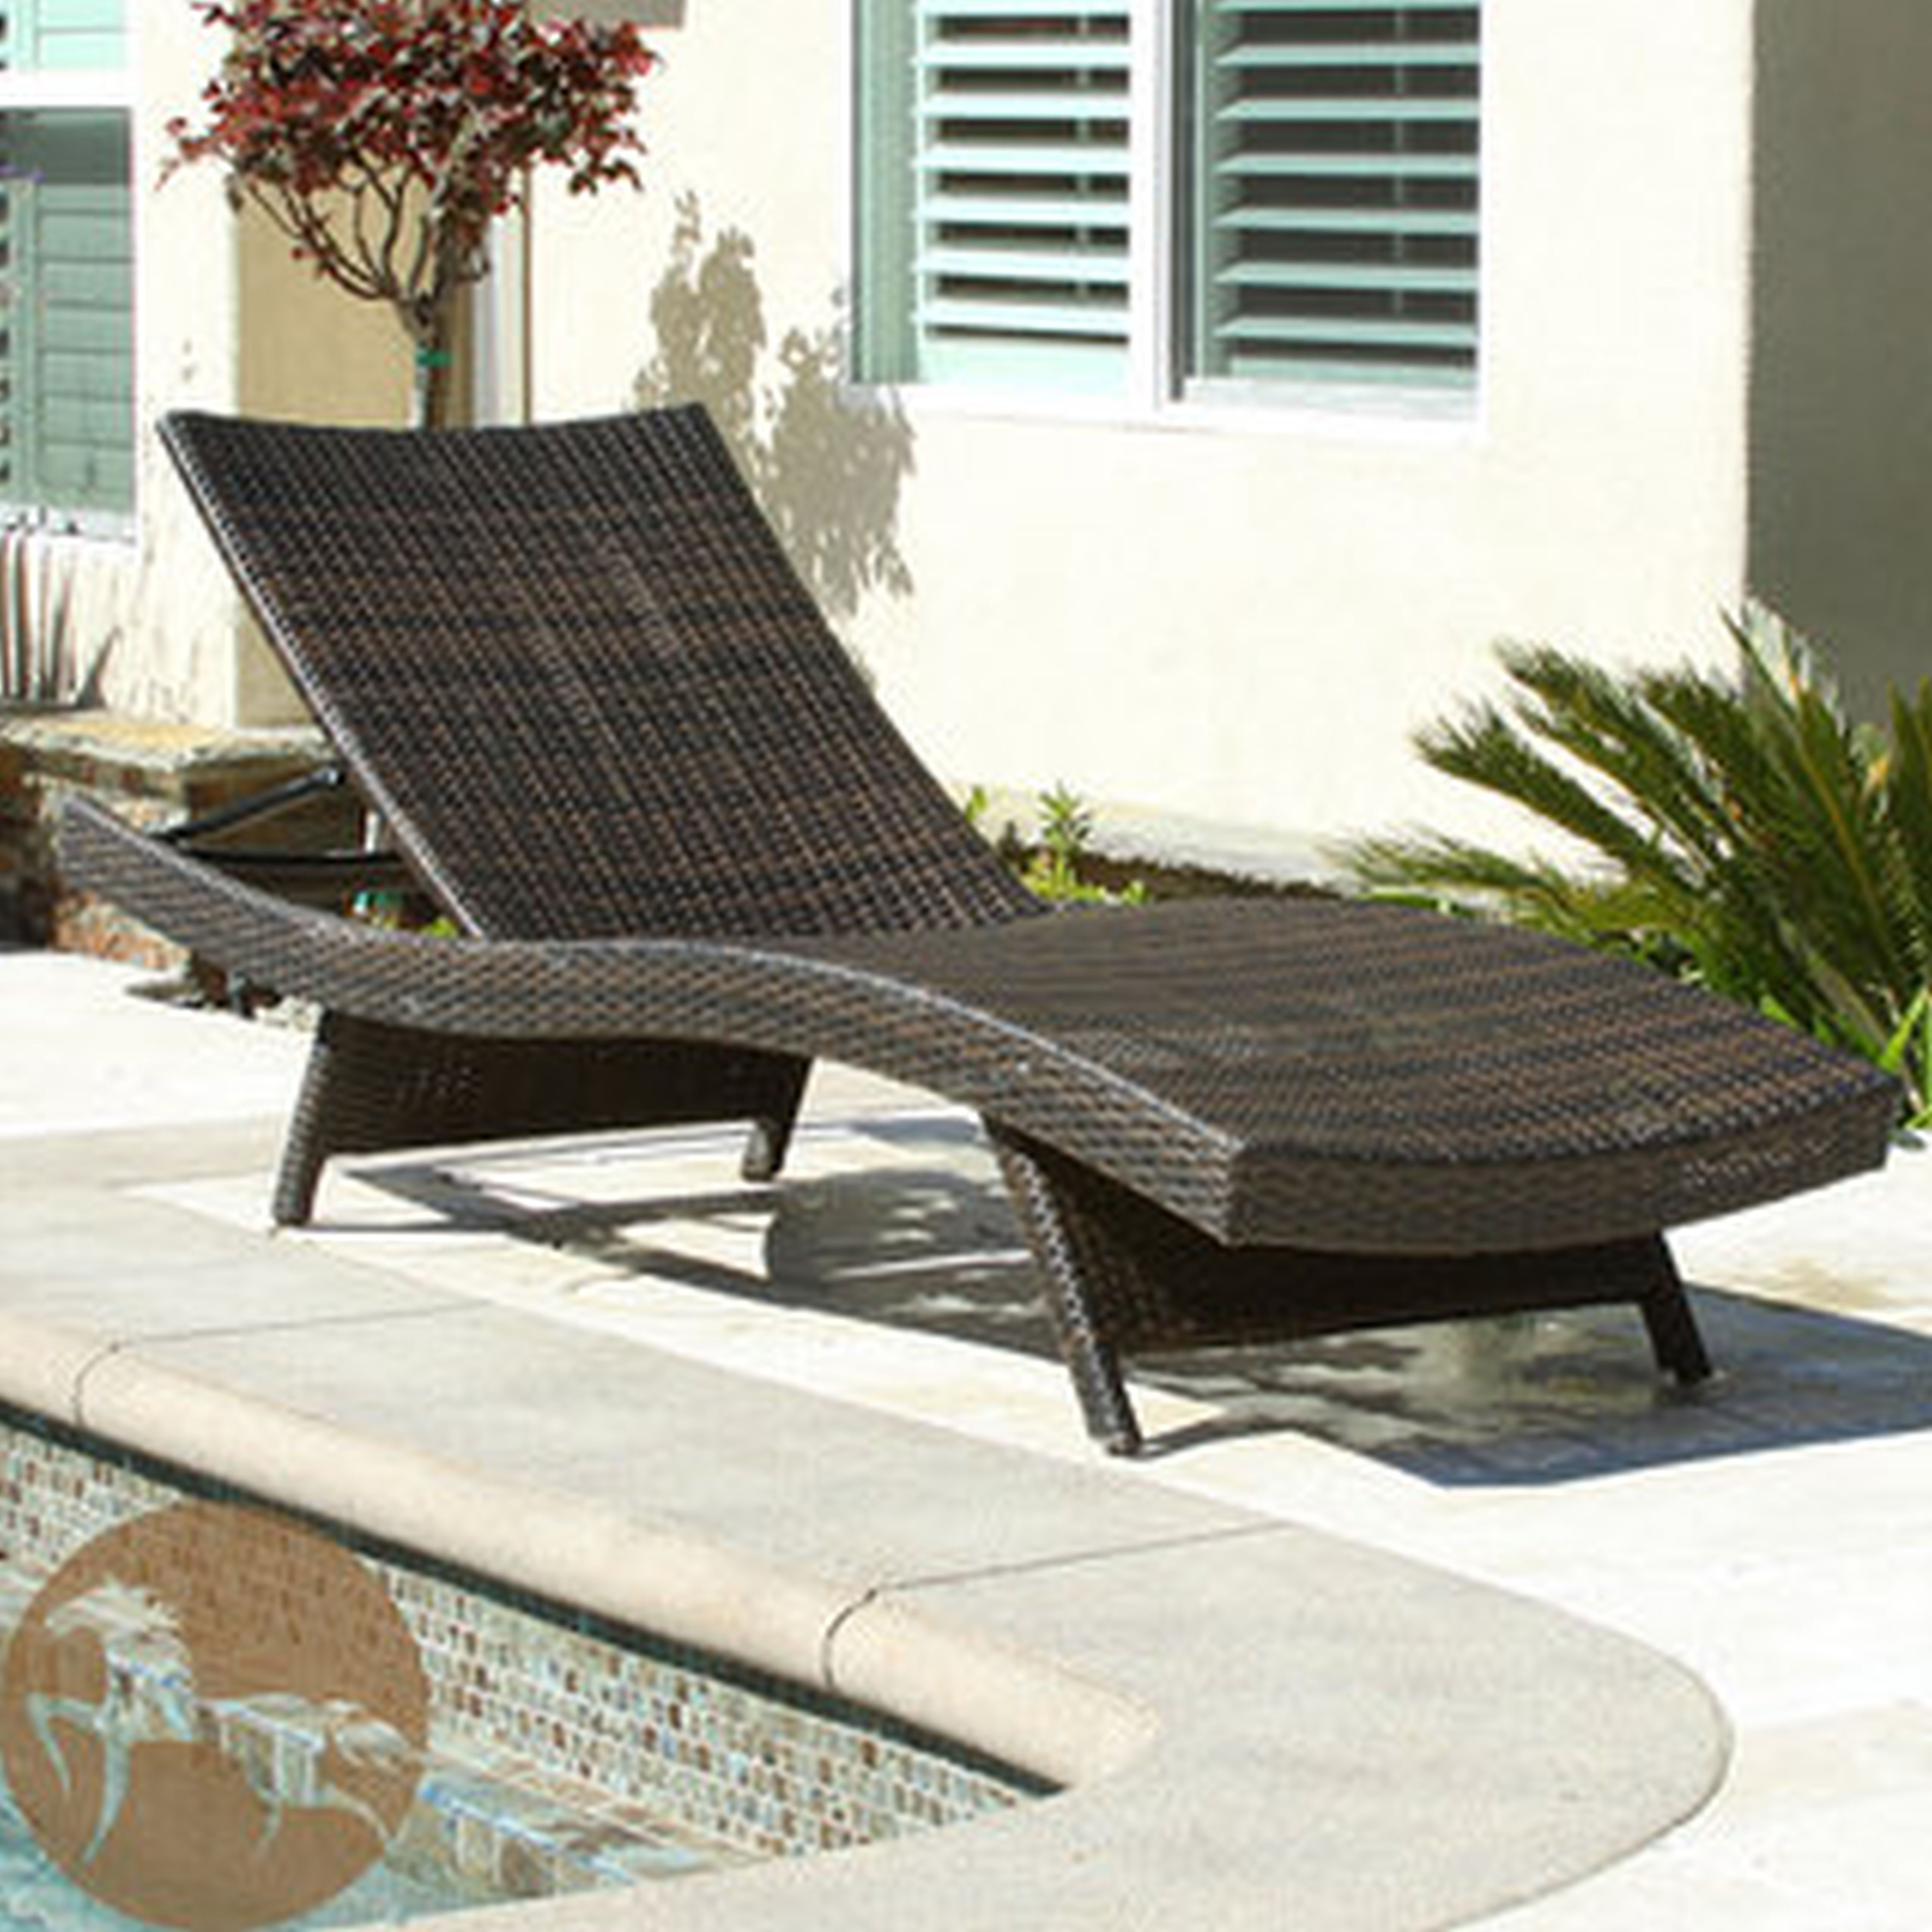 Chaise Lounges For Patio With Regard To Trendy Outdoor : Chaise Lounge Chairs For Living Room Indoor Chaise (View 5 of 15)